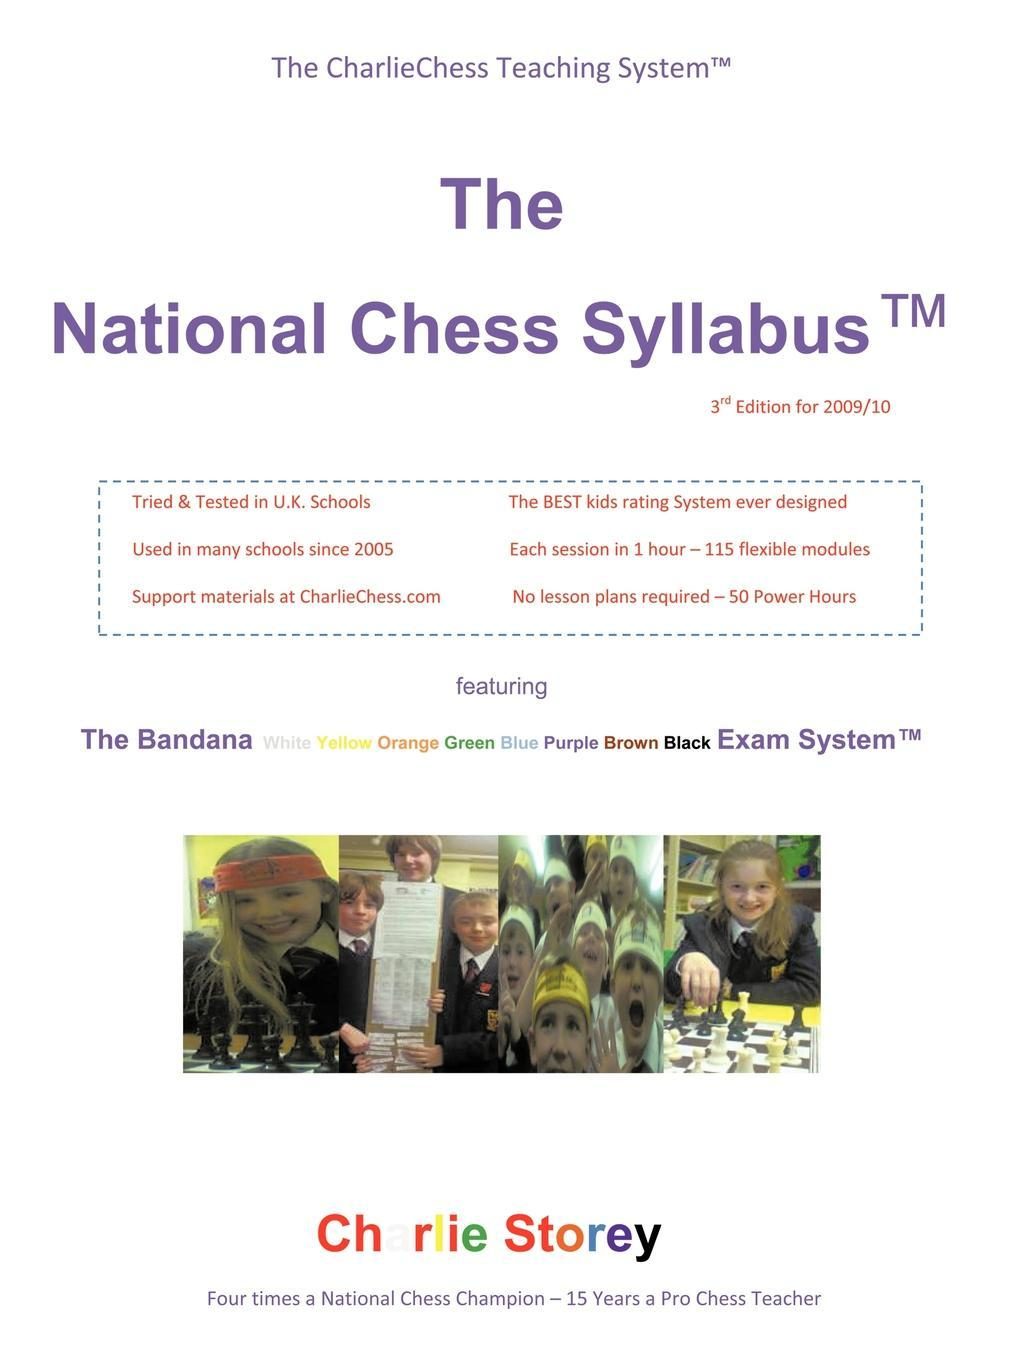 The National Chess Syllabus� featuring the Bandana Martial Art Exam System�